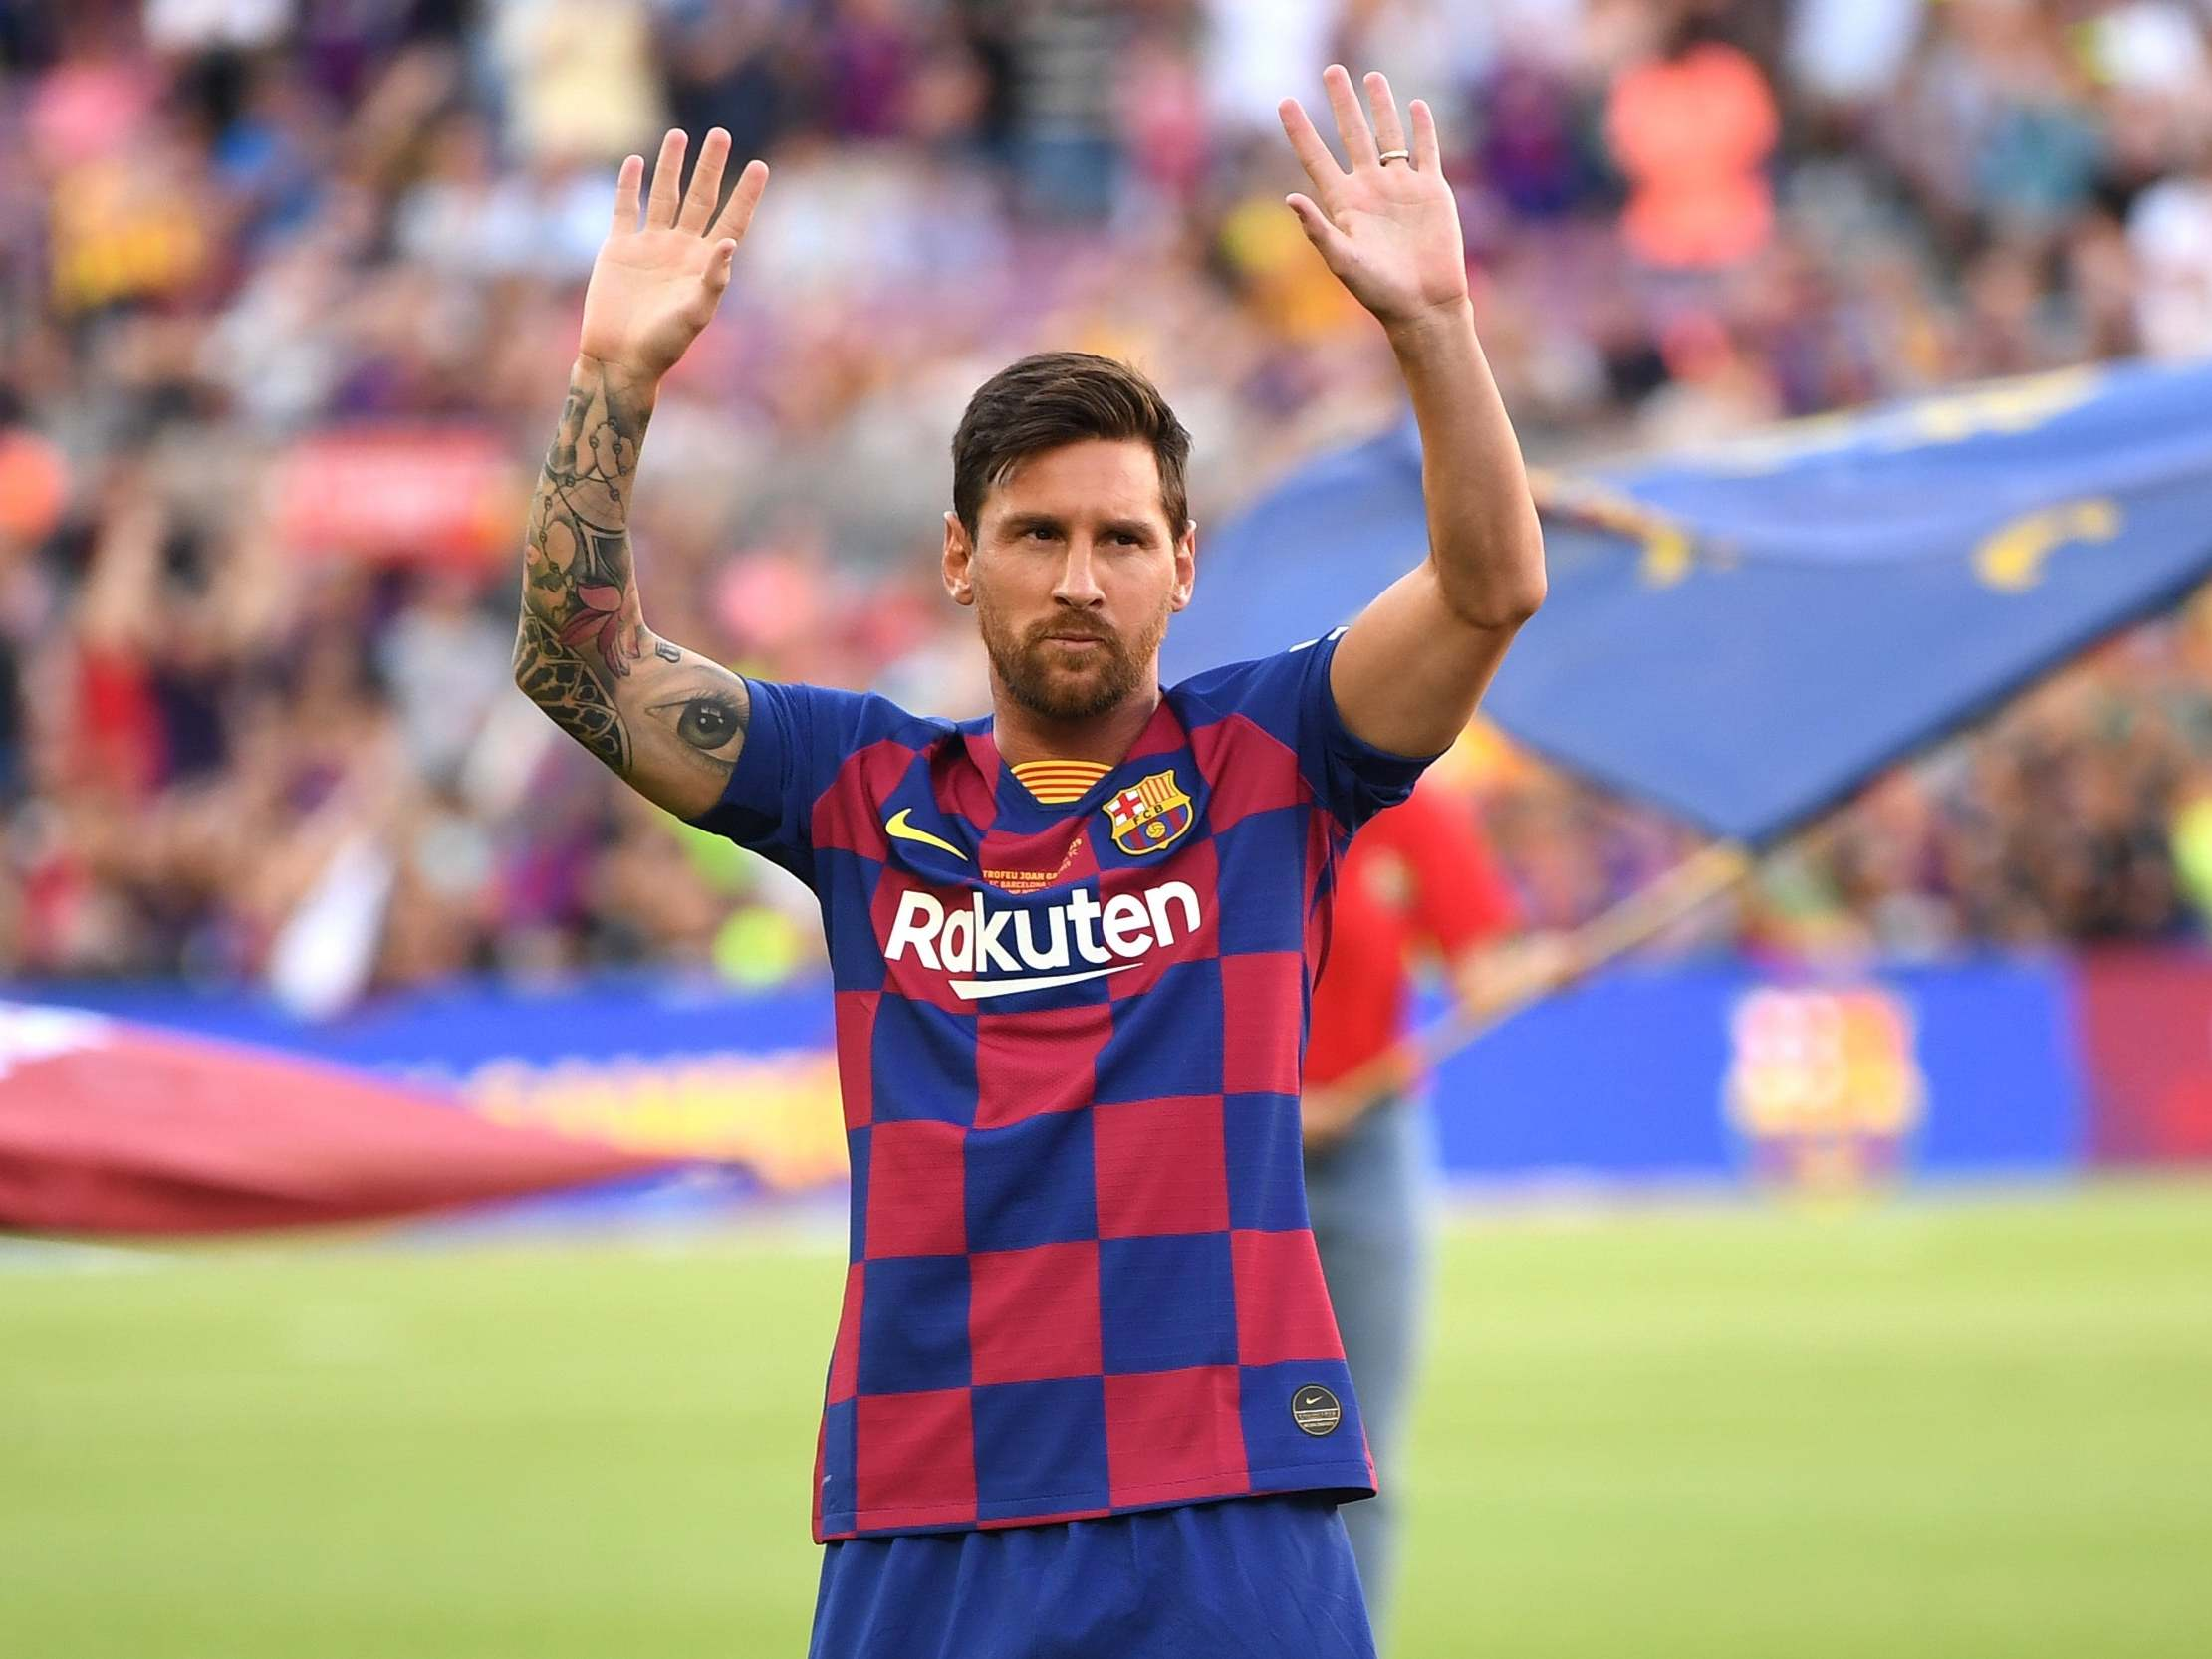 Lionel Messi transfer: Barcelona star responds to speculation he could leave Nou Camp for free next year